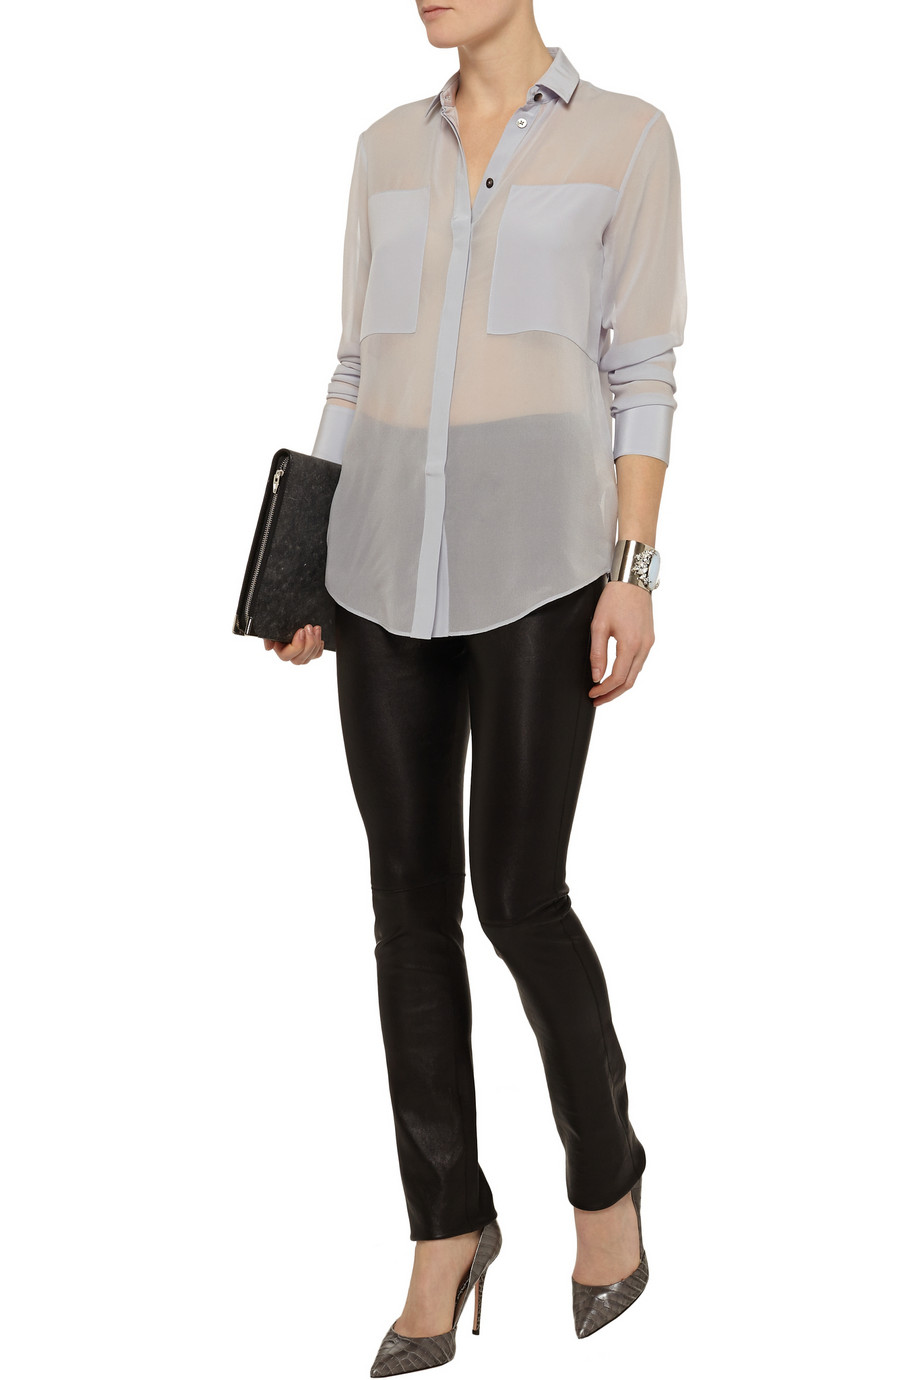 T by Alexander Wang Paneled silk-chiffon shirt – 55% at THE OUTNET.COM